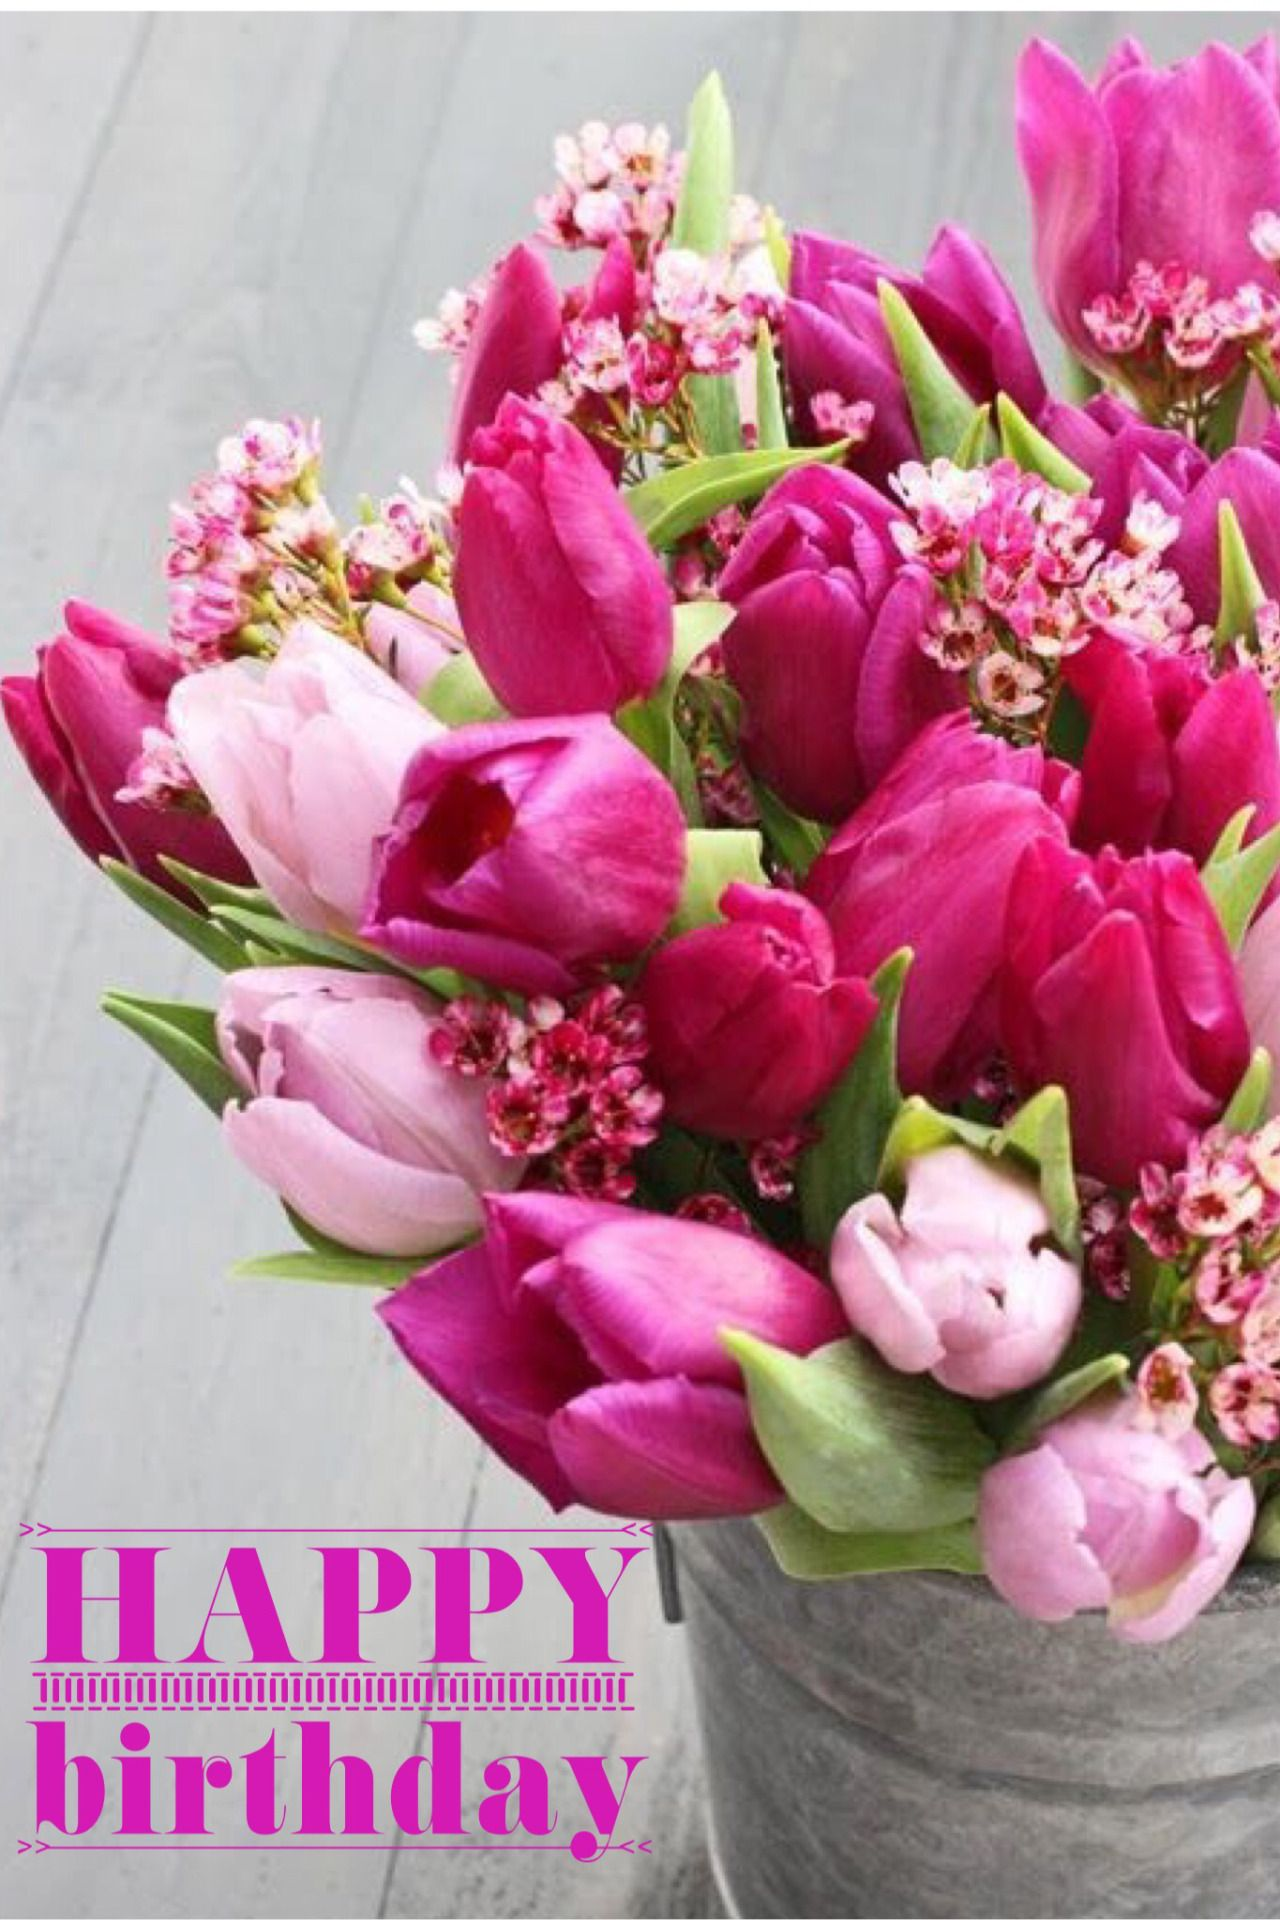 Happy birthday everything pink pinterest happy birthday happy birthday izmirmasajfo Choice Image